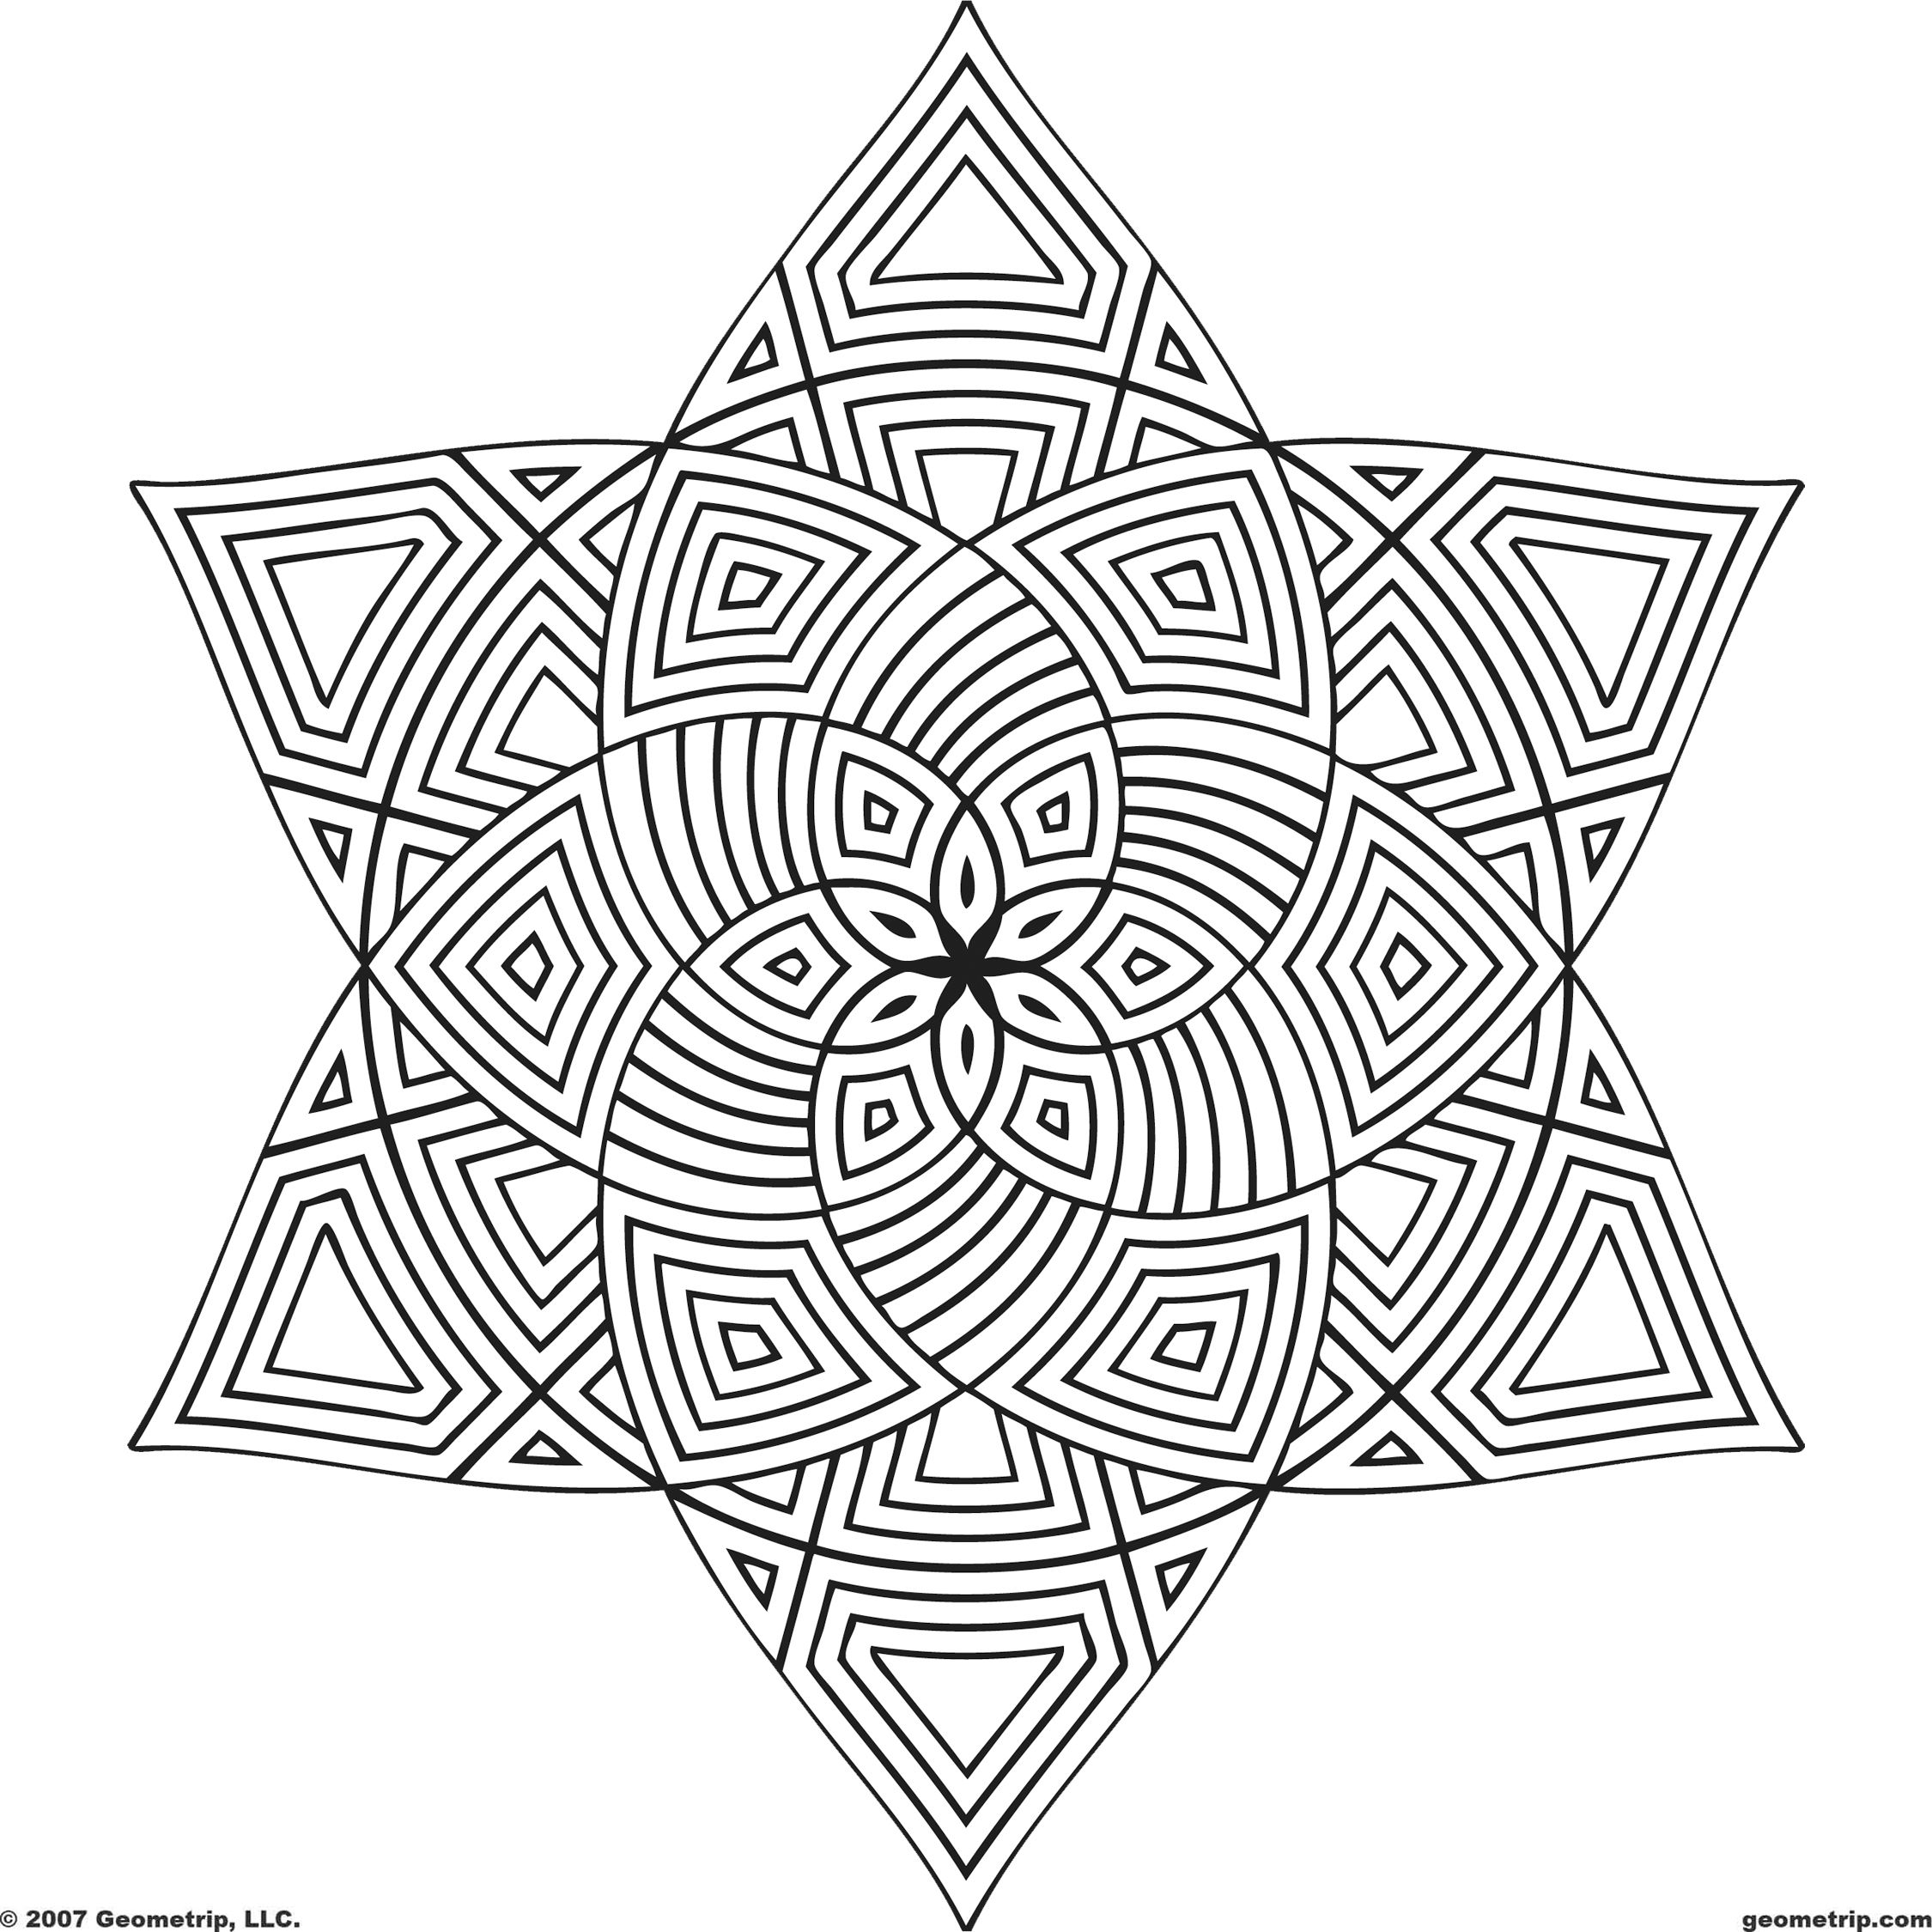 Free Printable Mandala Coloring Pages | Shapes: Page 1 of 2 ...